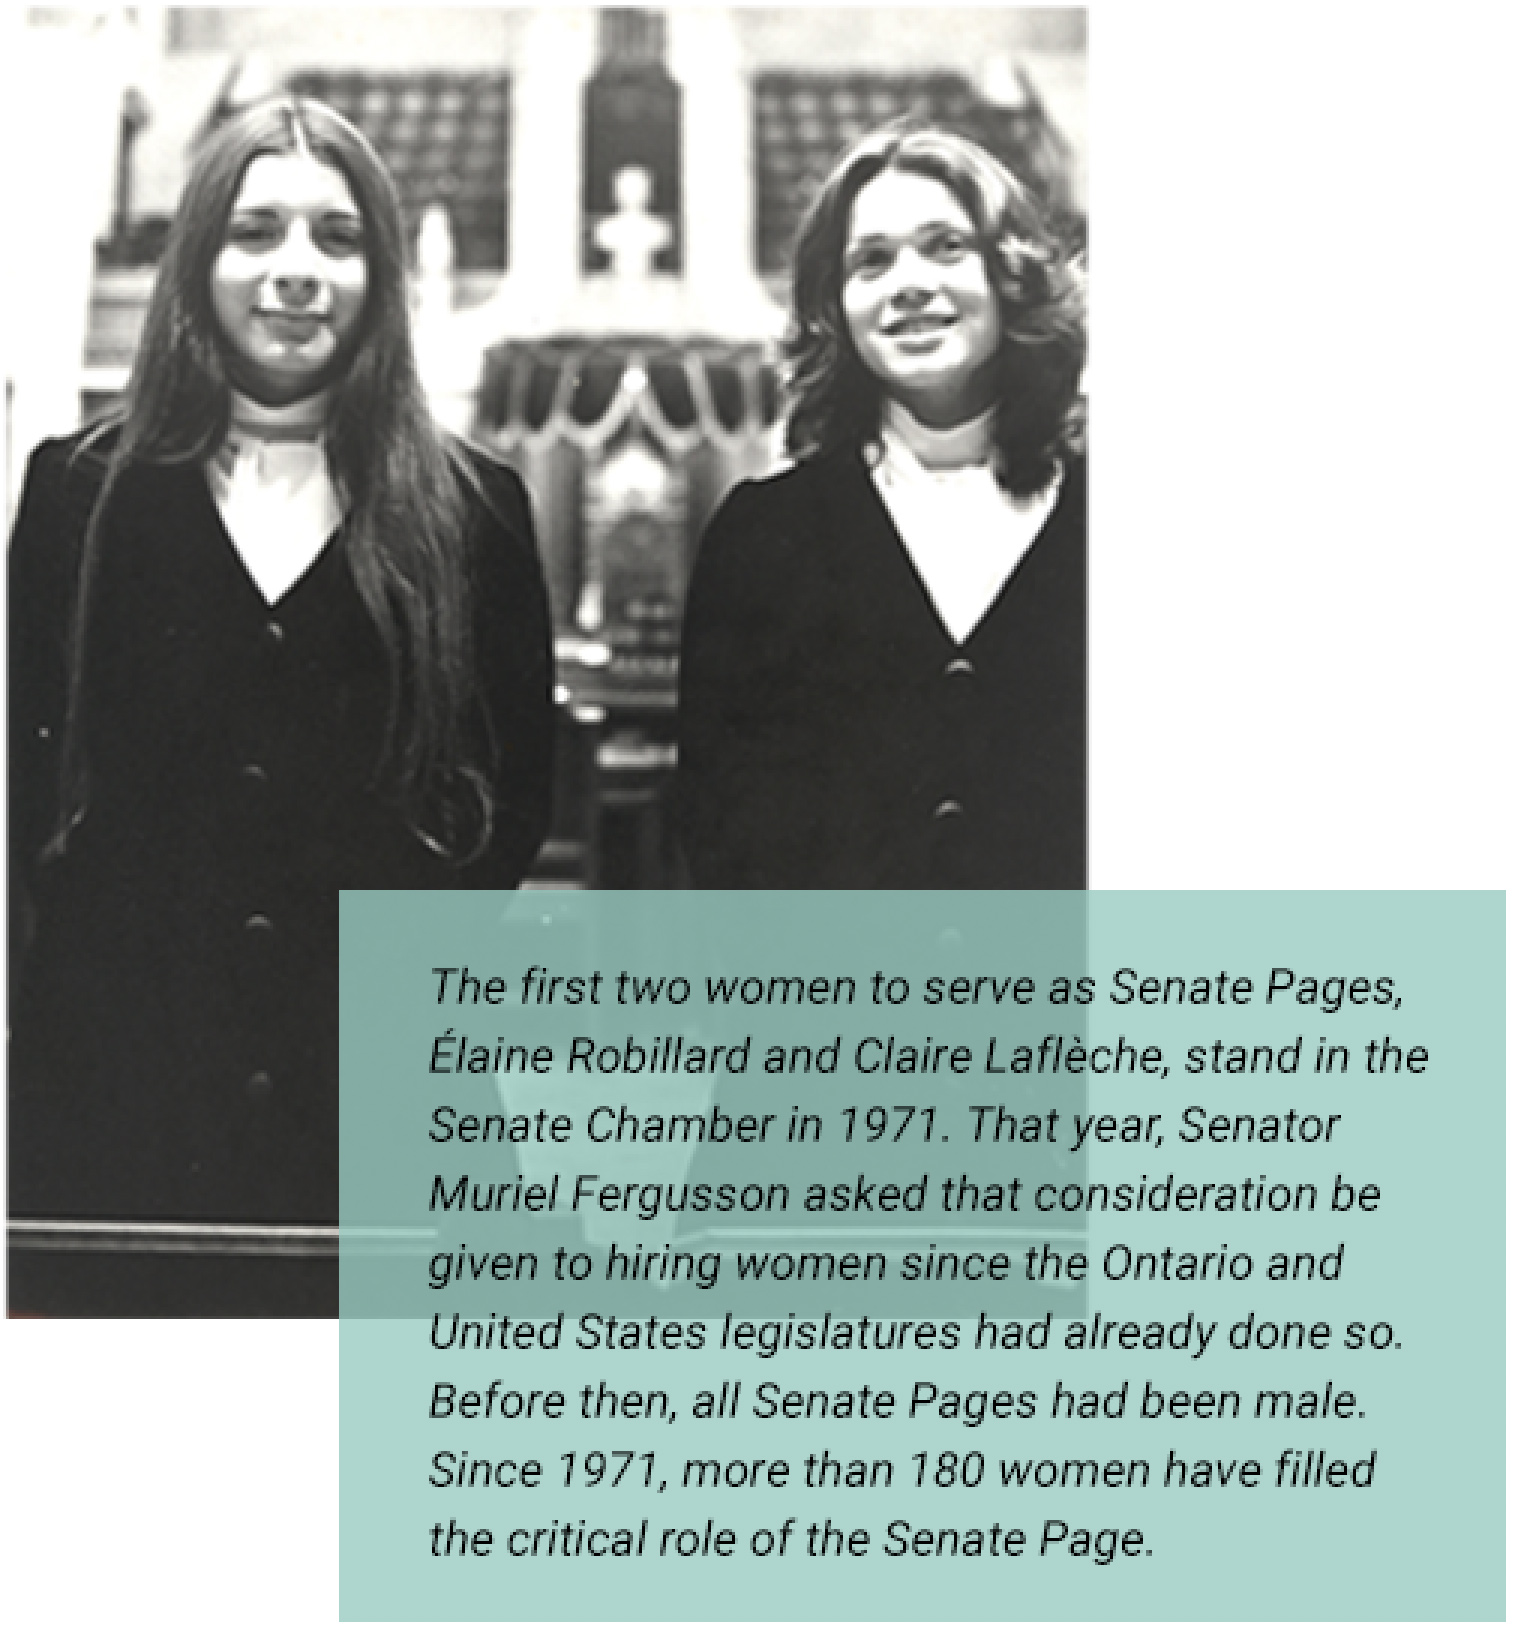 The first two women to serve as Senate Pages, Élaine Robillard and Claire Laflèche, stand in the Senate Chamber in 1971. That year, Senator Muriel Fergusson asked that consideration be given to hiring women since the Ontario and United States legislatures had already done so. Before then, all Senate Pages had been male. Since 1971, more than 180 women have filled the critical role of the Senate Page.